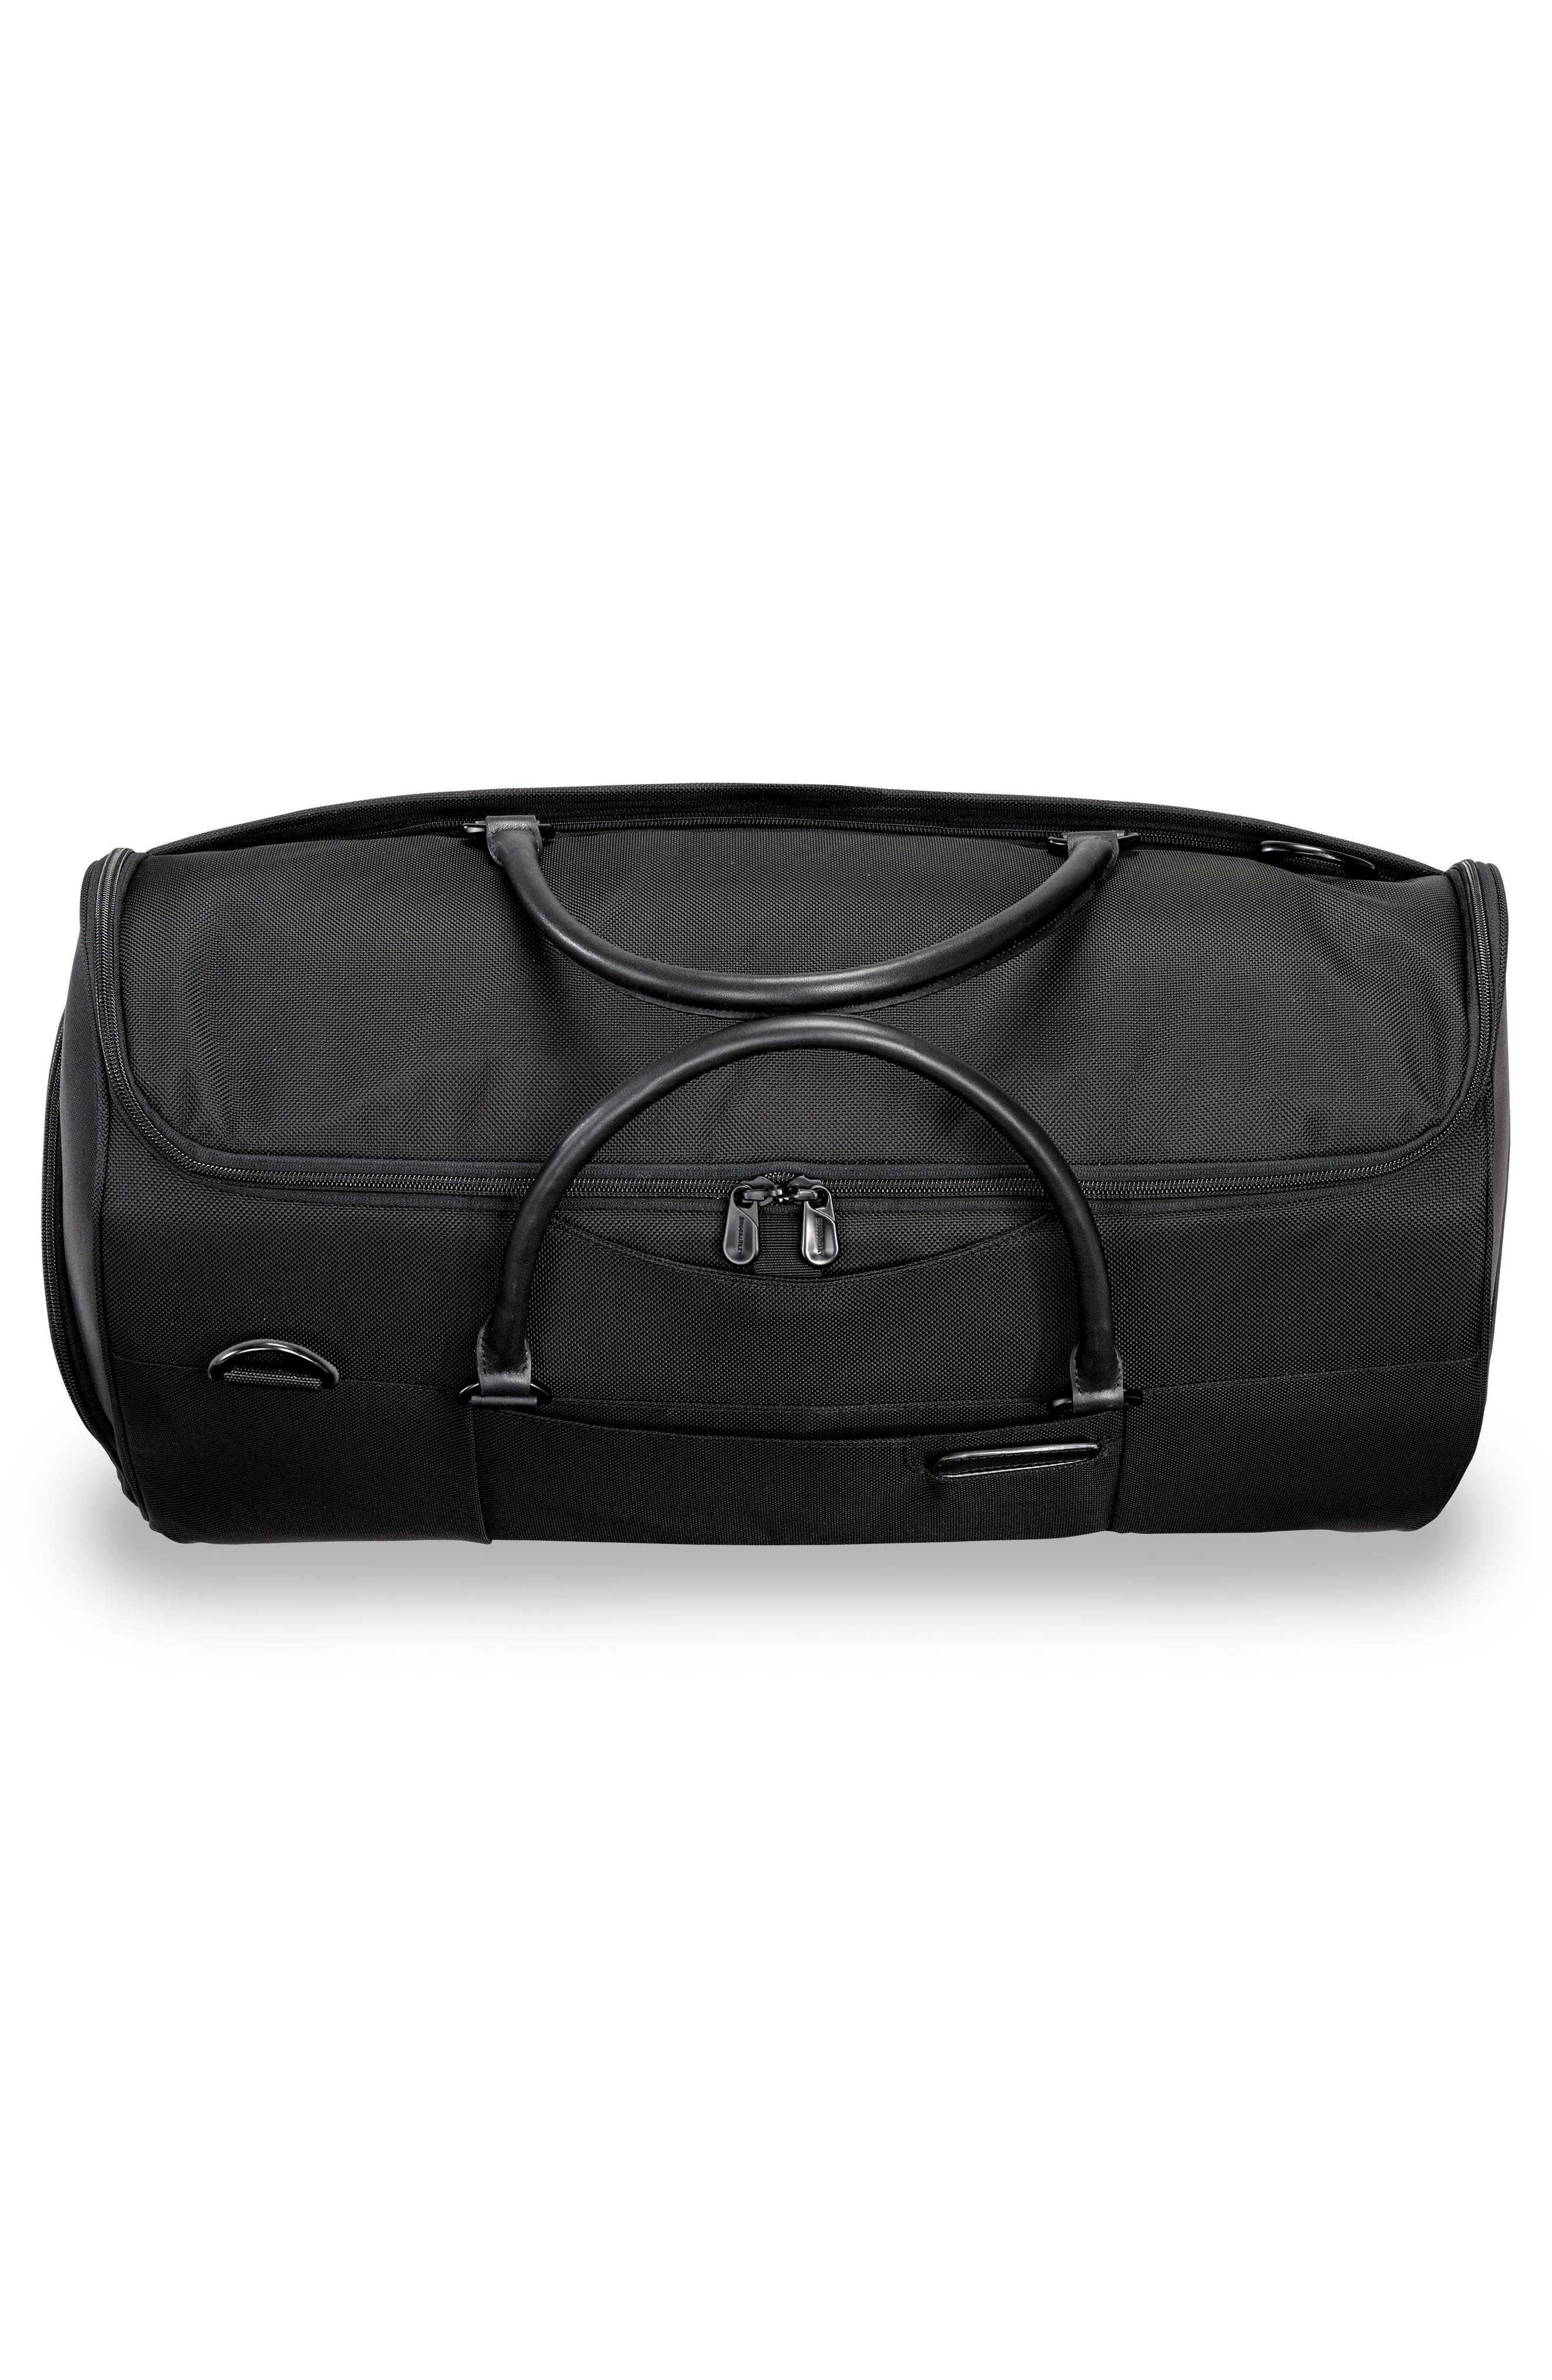 BRIGGS & RILEY, Baseline Suiter Duffle Bag, Alternate thumbnail 8, color, BLACK